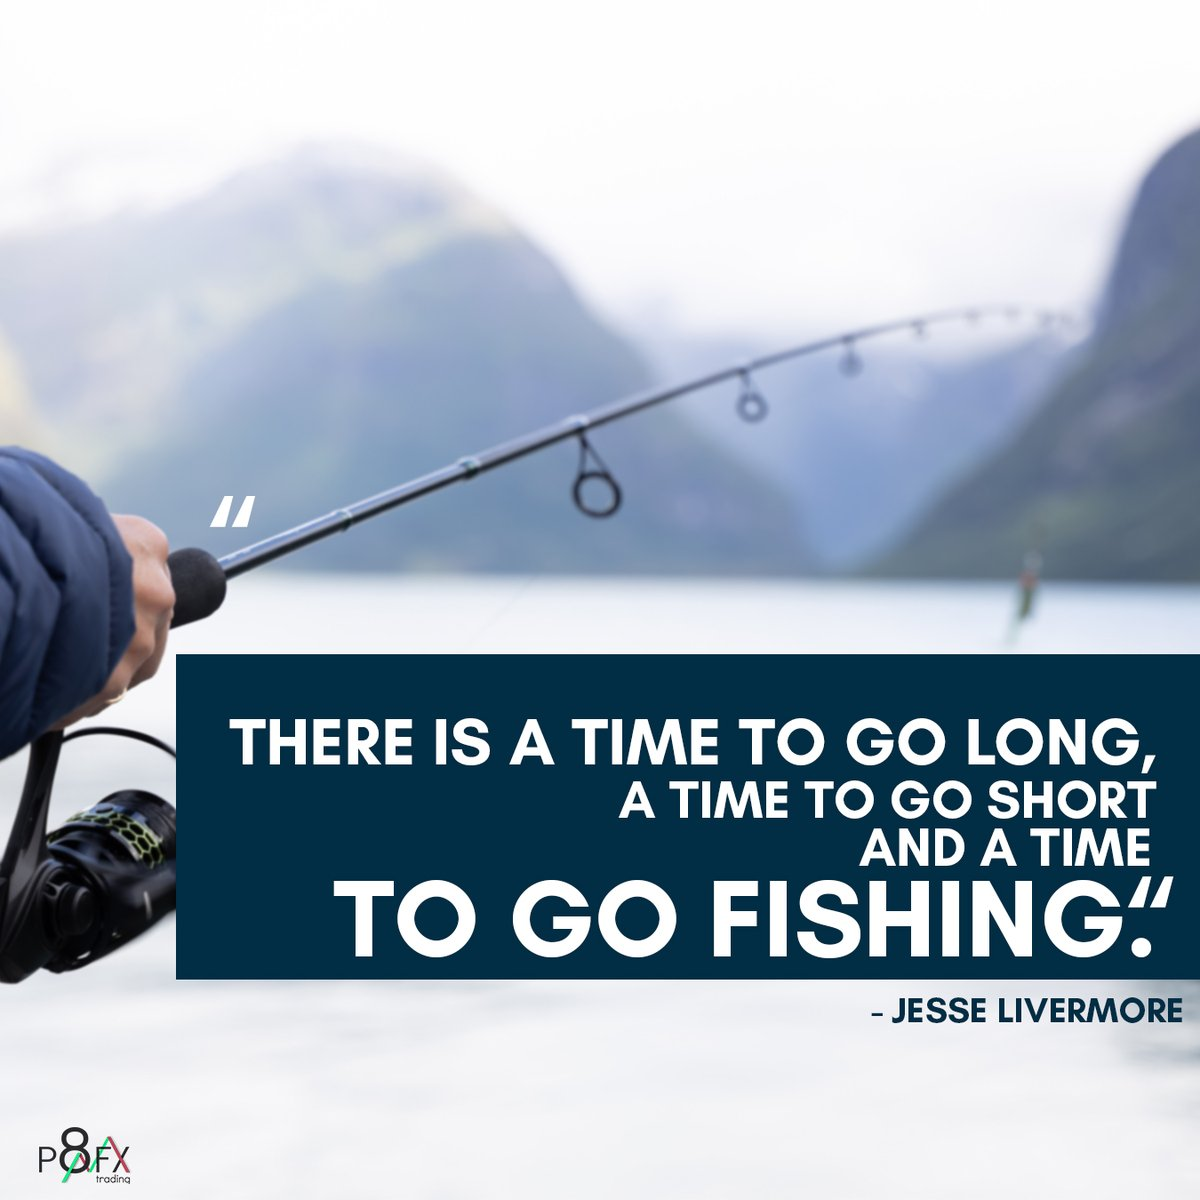 A quote about trading less rather than more. Having a break from trading can often make you a better trader.  #gofishing #golong #goshort #lifestyle #determination #travelling #instago #motivational #inspirational #successful #motivationalquotes #entrepreneurlife https://t.co/gRF0z5lyy8